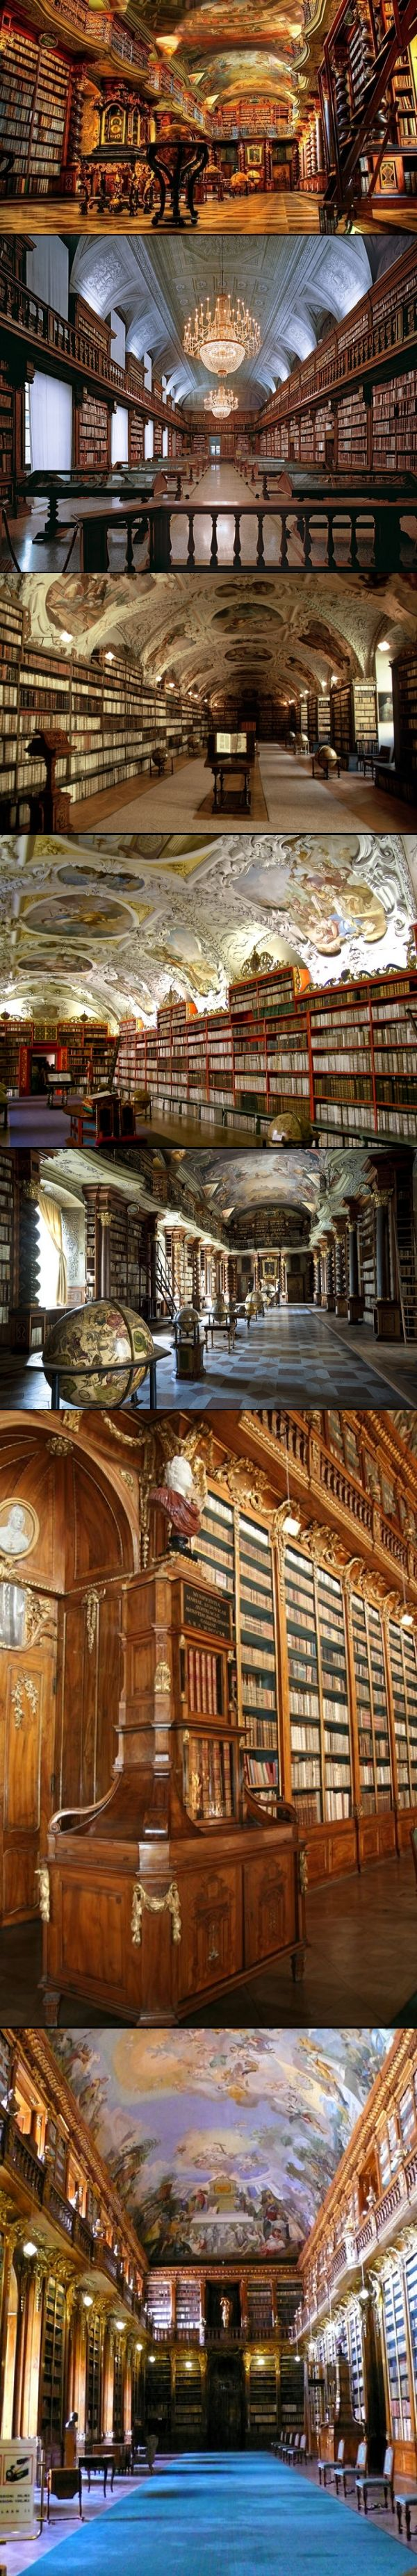 The Clementinum (Klementinum in Czech) is a historic complex of buildings in Prague. Until recently the complex hosted the National, University and Technical libraries, the City Library also being located nearby on Mariánské Náměstí. The Technical library - created via http://pinthemall.net